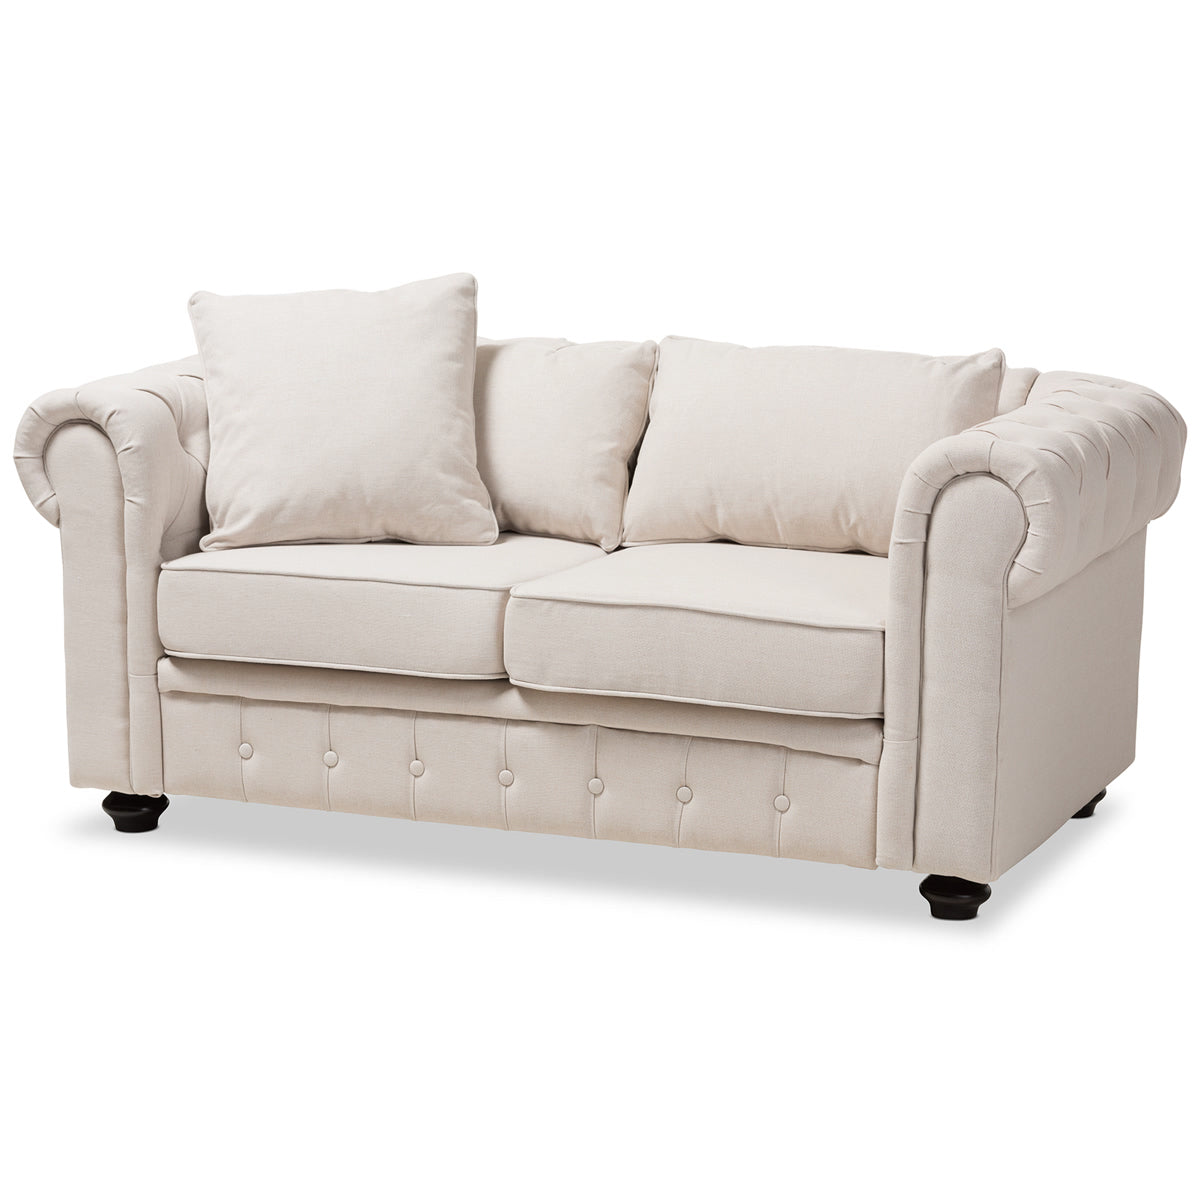 Baxton Studio Alaise Modern Classic Beige Linen Tufted Scroll Arm Chesterfield Loveseat Baxton Studio-sofas-Minimal And Modern - 1